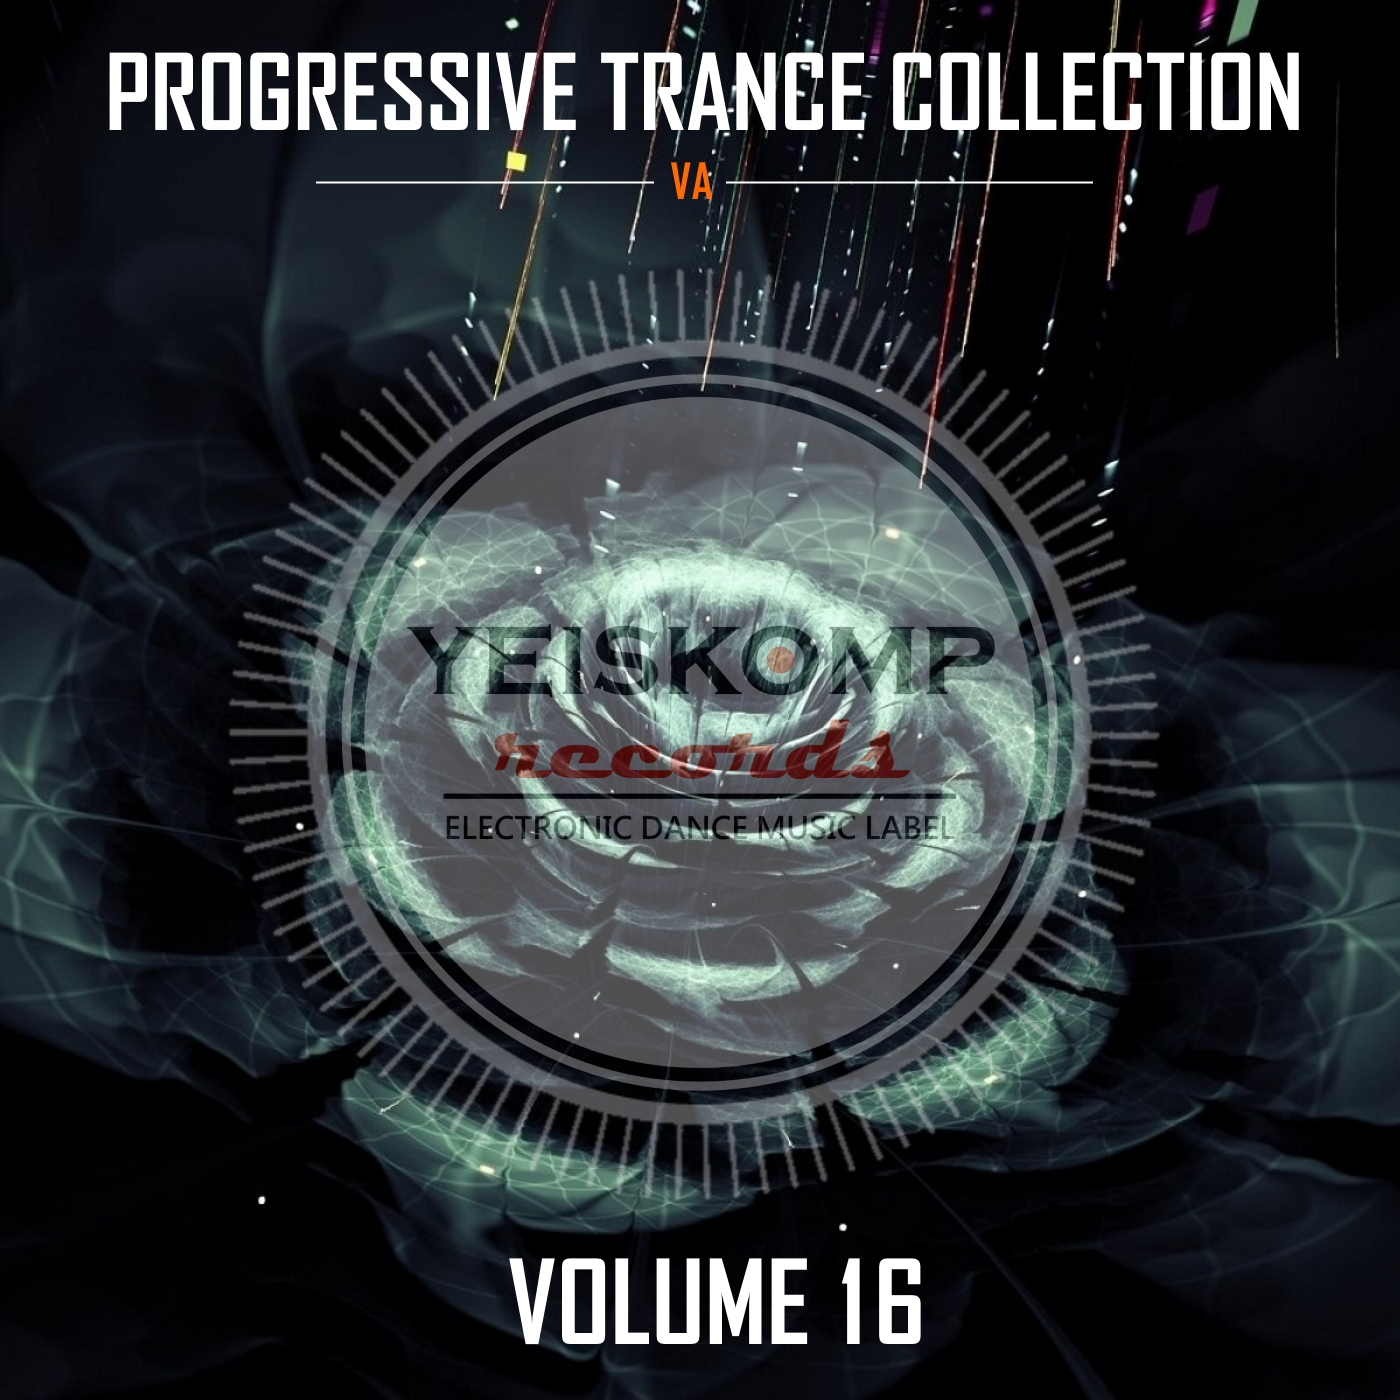 Progressive Trance Collection by YR, Vol. 16